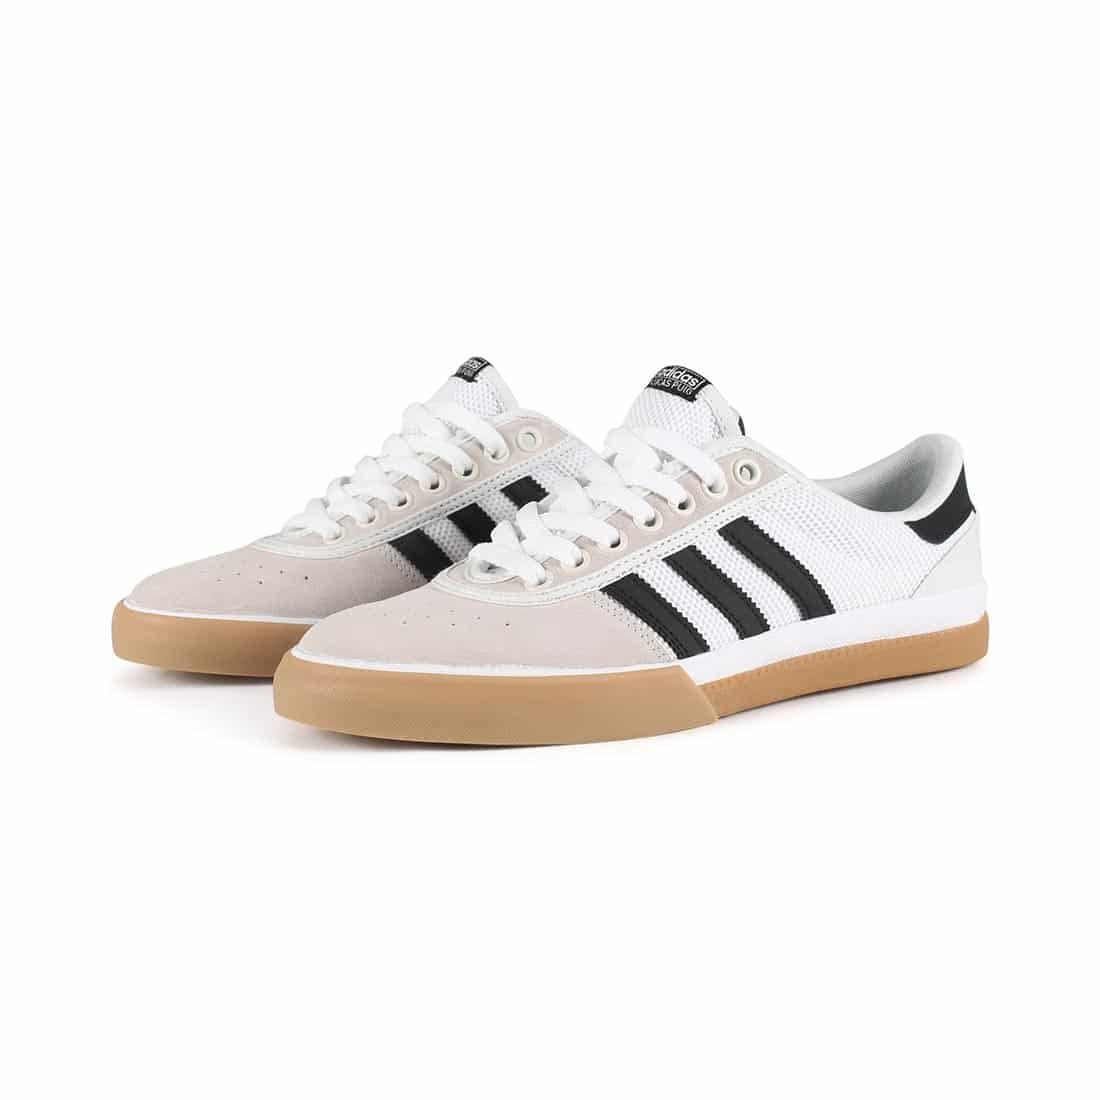 the best attitude 0f399 83db1 ... Adidas-Lucas-Premiere-Shoes-Crystal-White-Core-Black ...